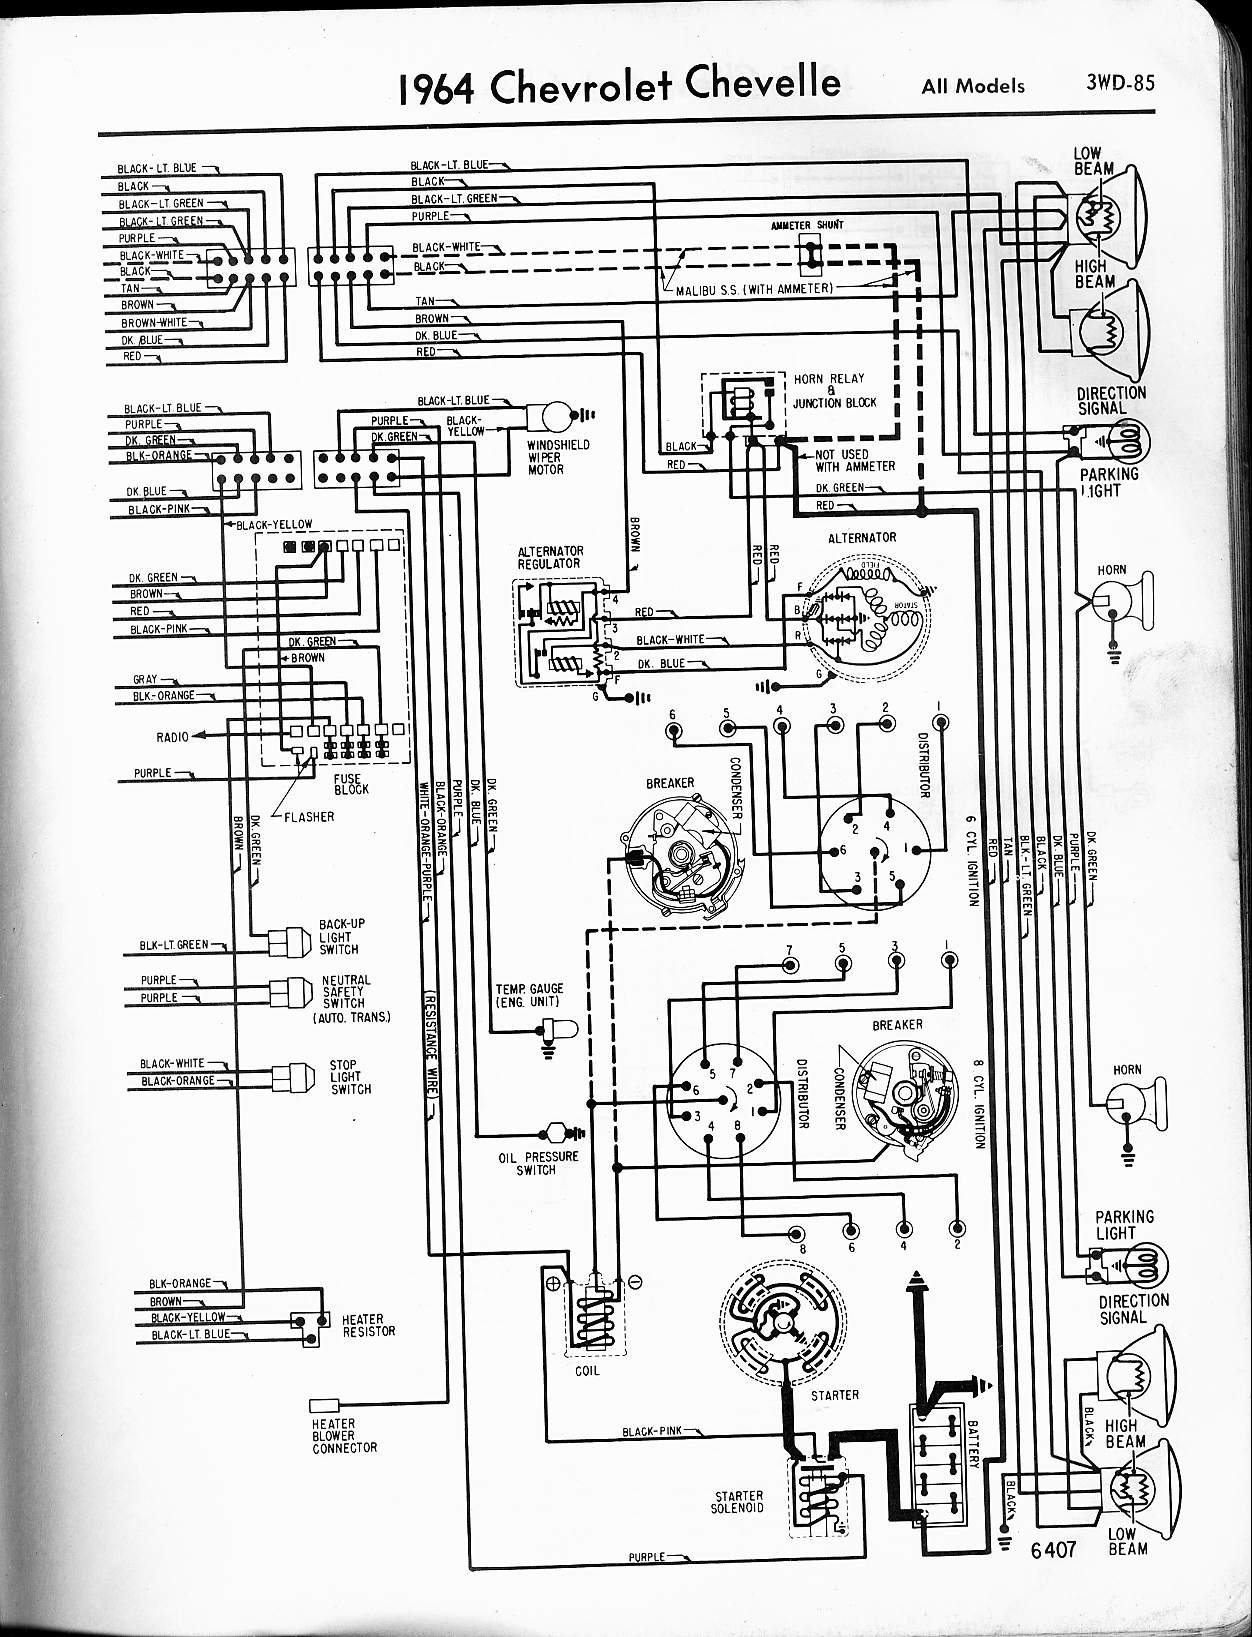 70 Chevelle Engine Wiring Harness Diagram Free For 1970 Chevrolet Nova 1969 Dash Origin Rh 18 1 Darklifezine De Ss